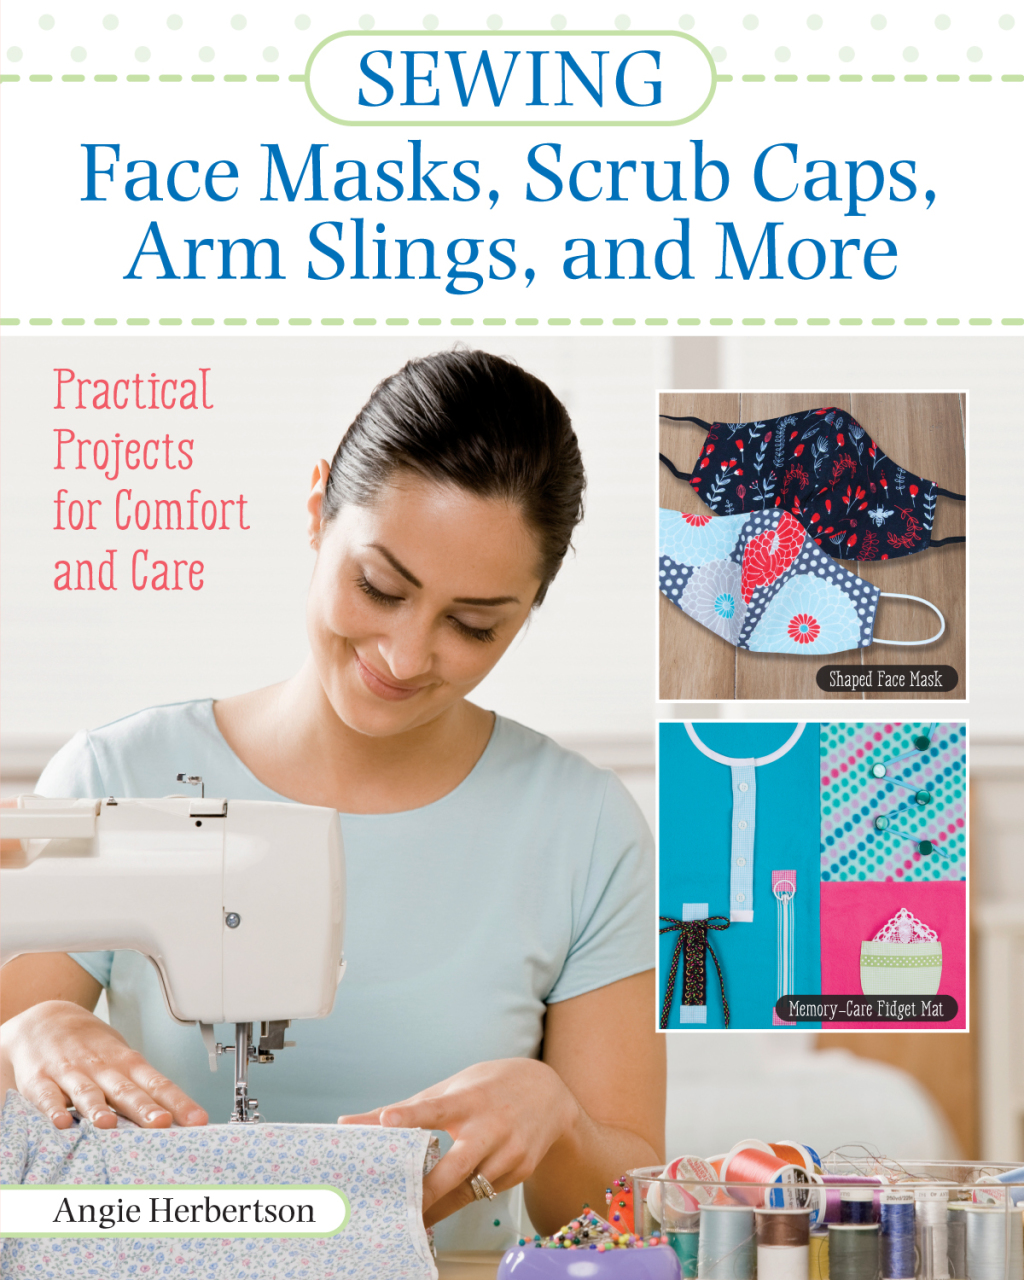 ePub Sewing Face Masks, Scrub Caps, Arm Slings, and More